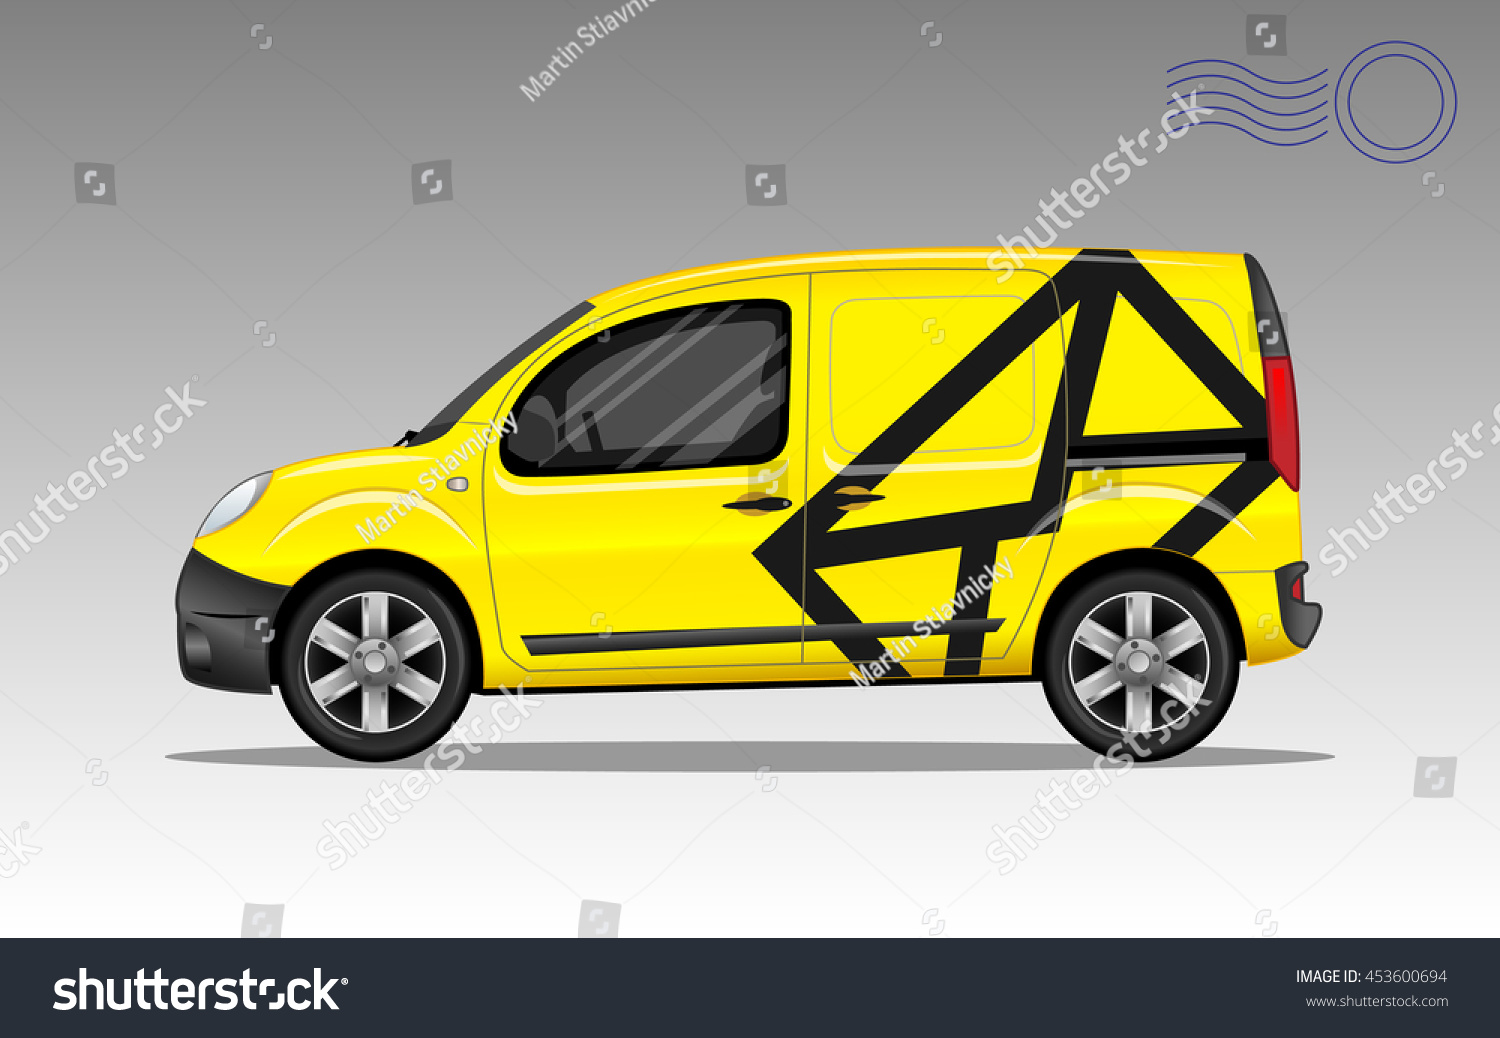 Yellow Post Car Envelope Symbol Detailed Stock Vector 453600694